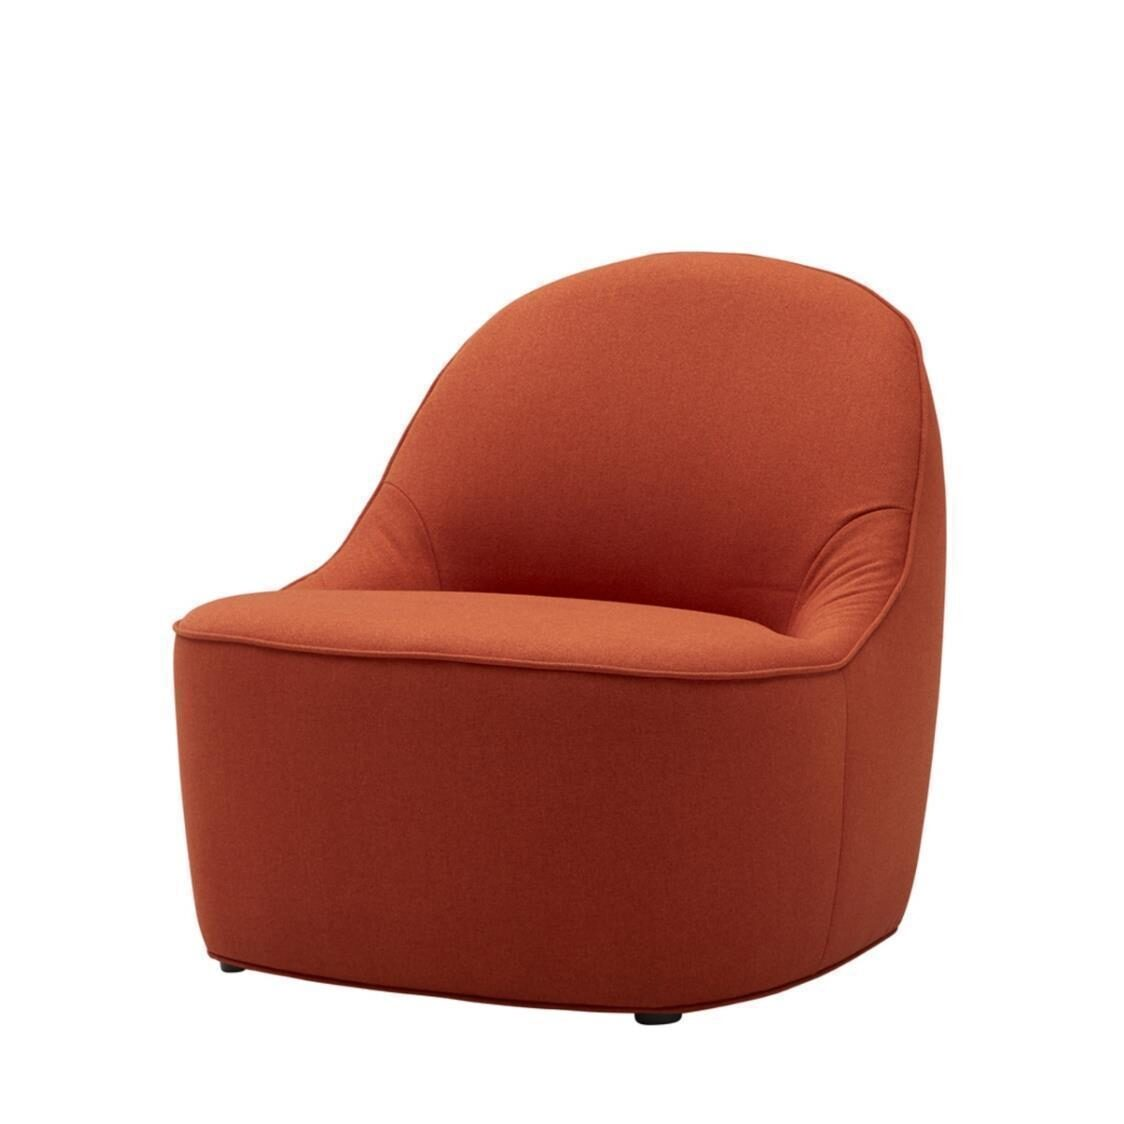 Stone Chair 458 Brick Orange